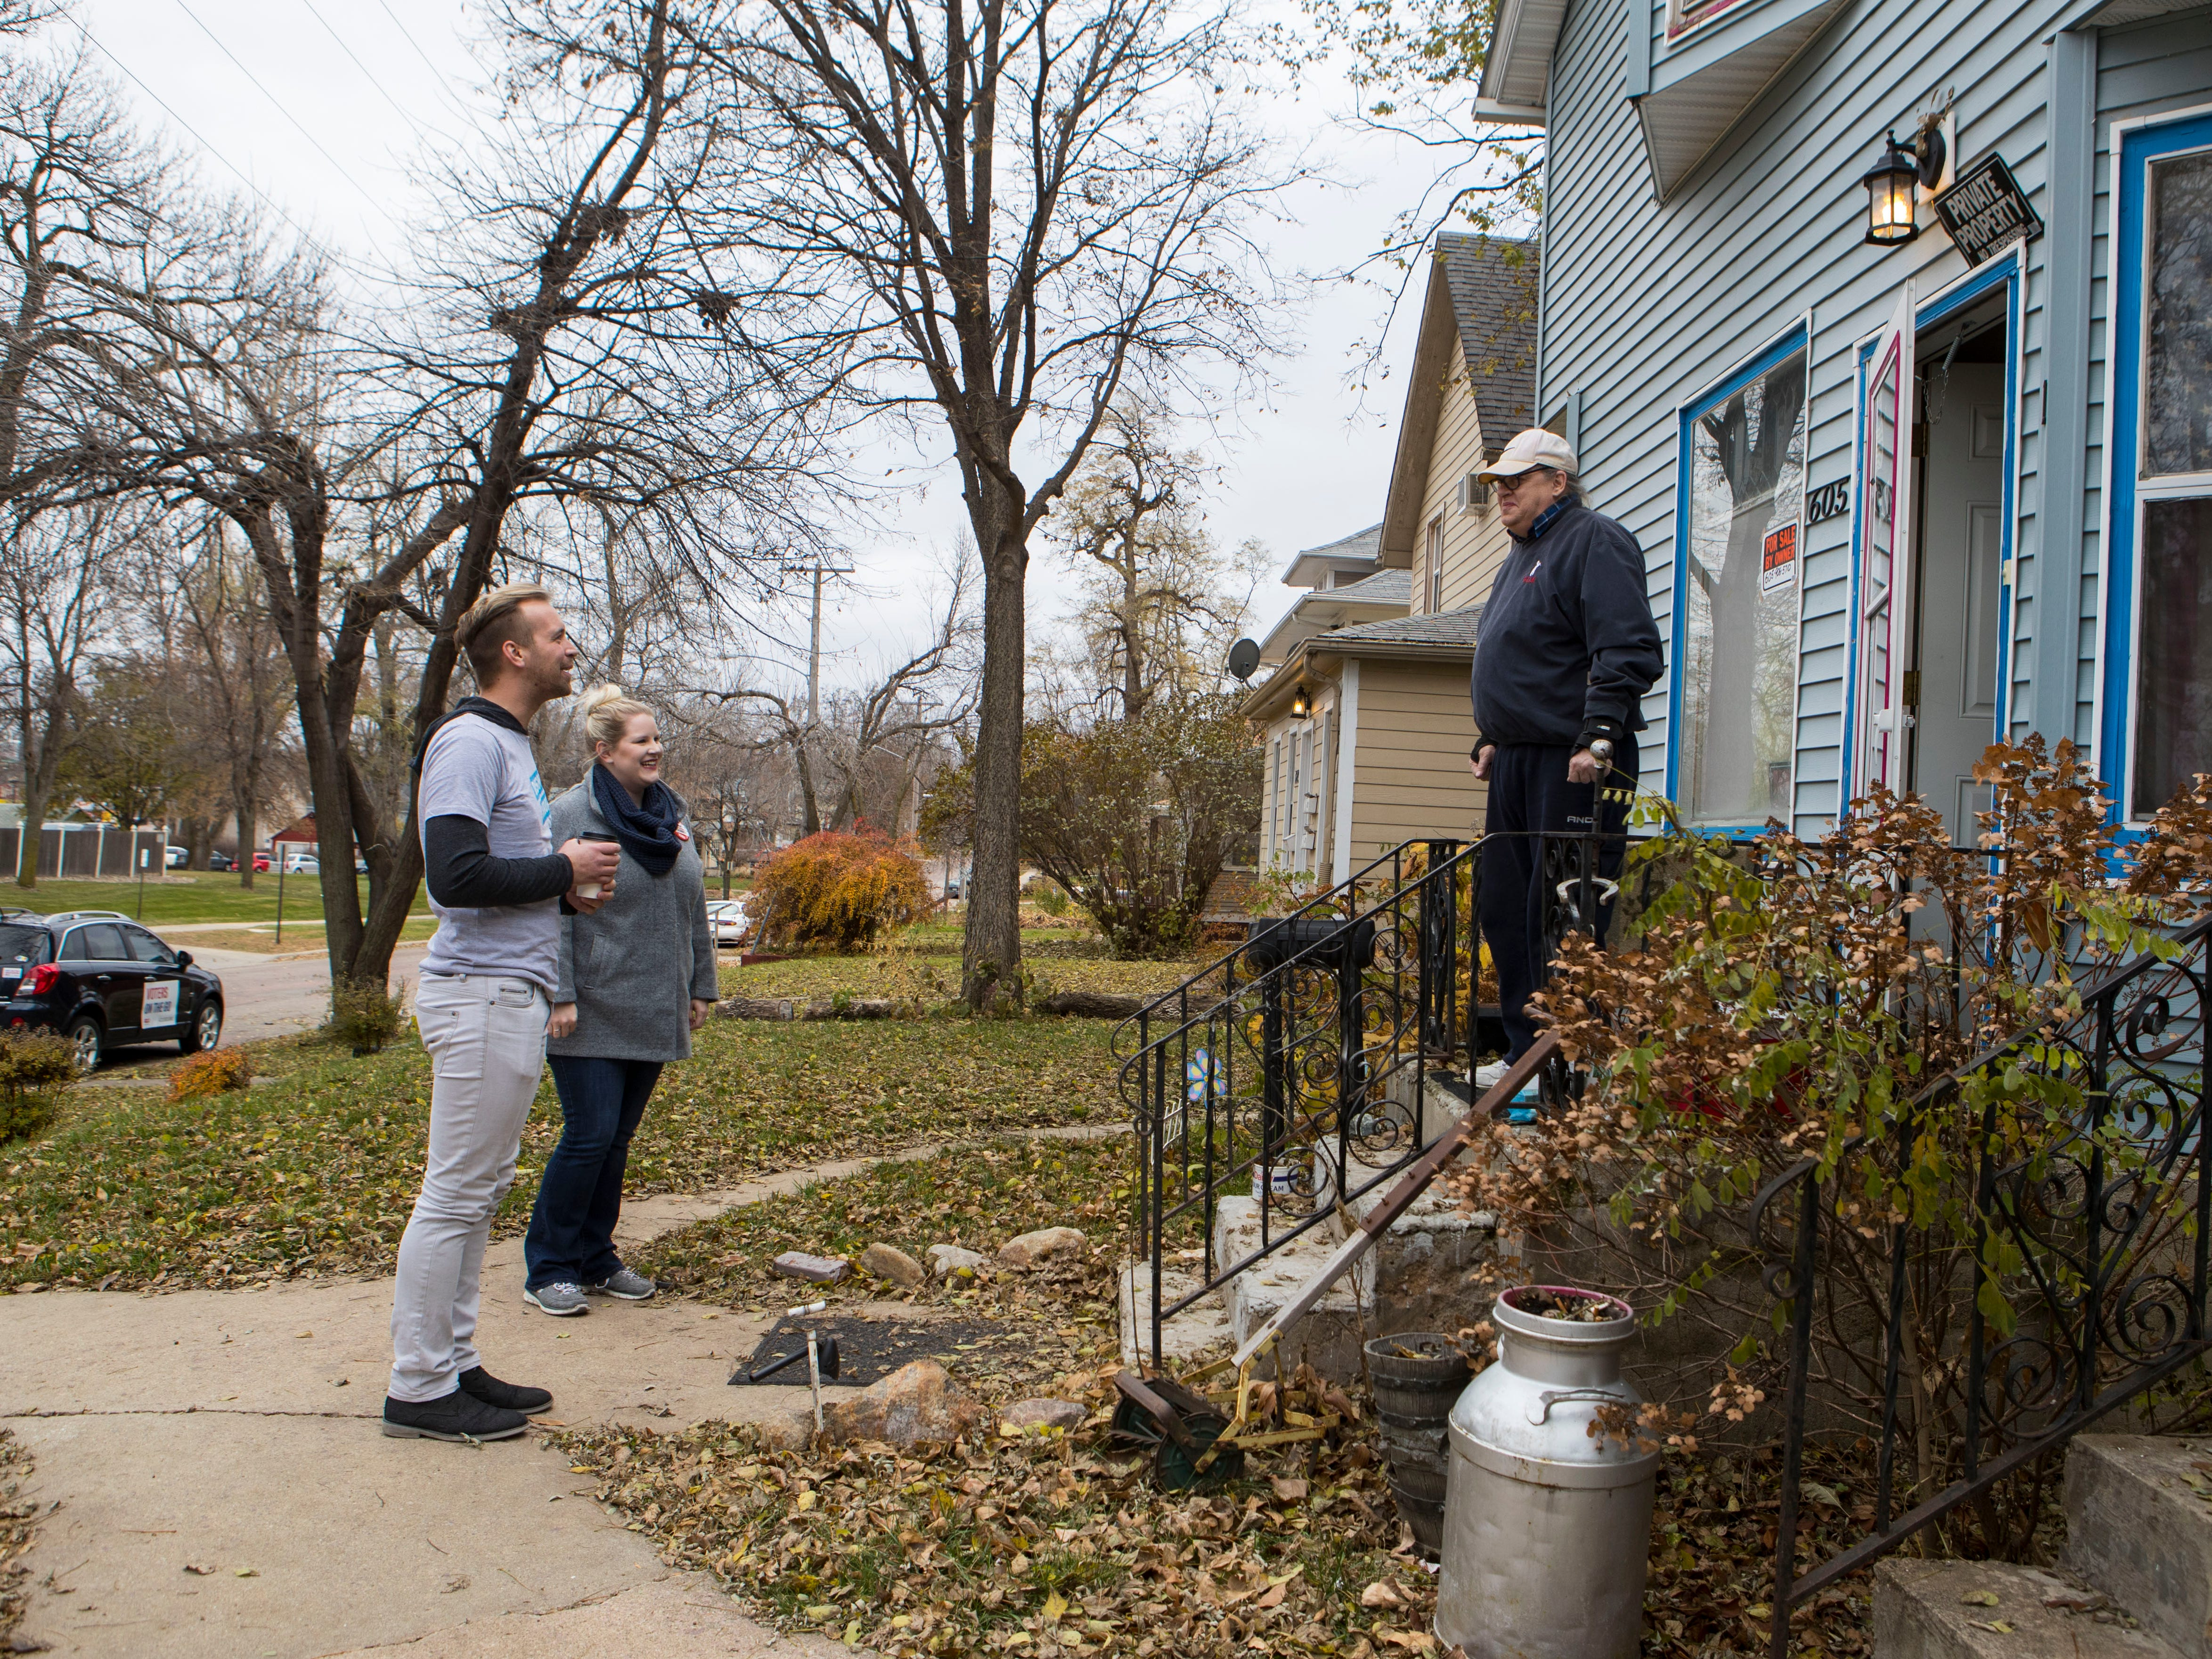 Luke Alton Huber and Kirsten Wichern, ACLU volunteers, pick up Larry Loebig (right) at his home and take him to First Lutheran Church, his voting center, in Sioux Falls, S.D., Tuesday, Nov. 6, 2018.